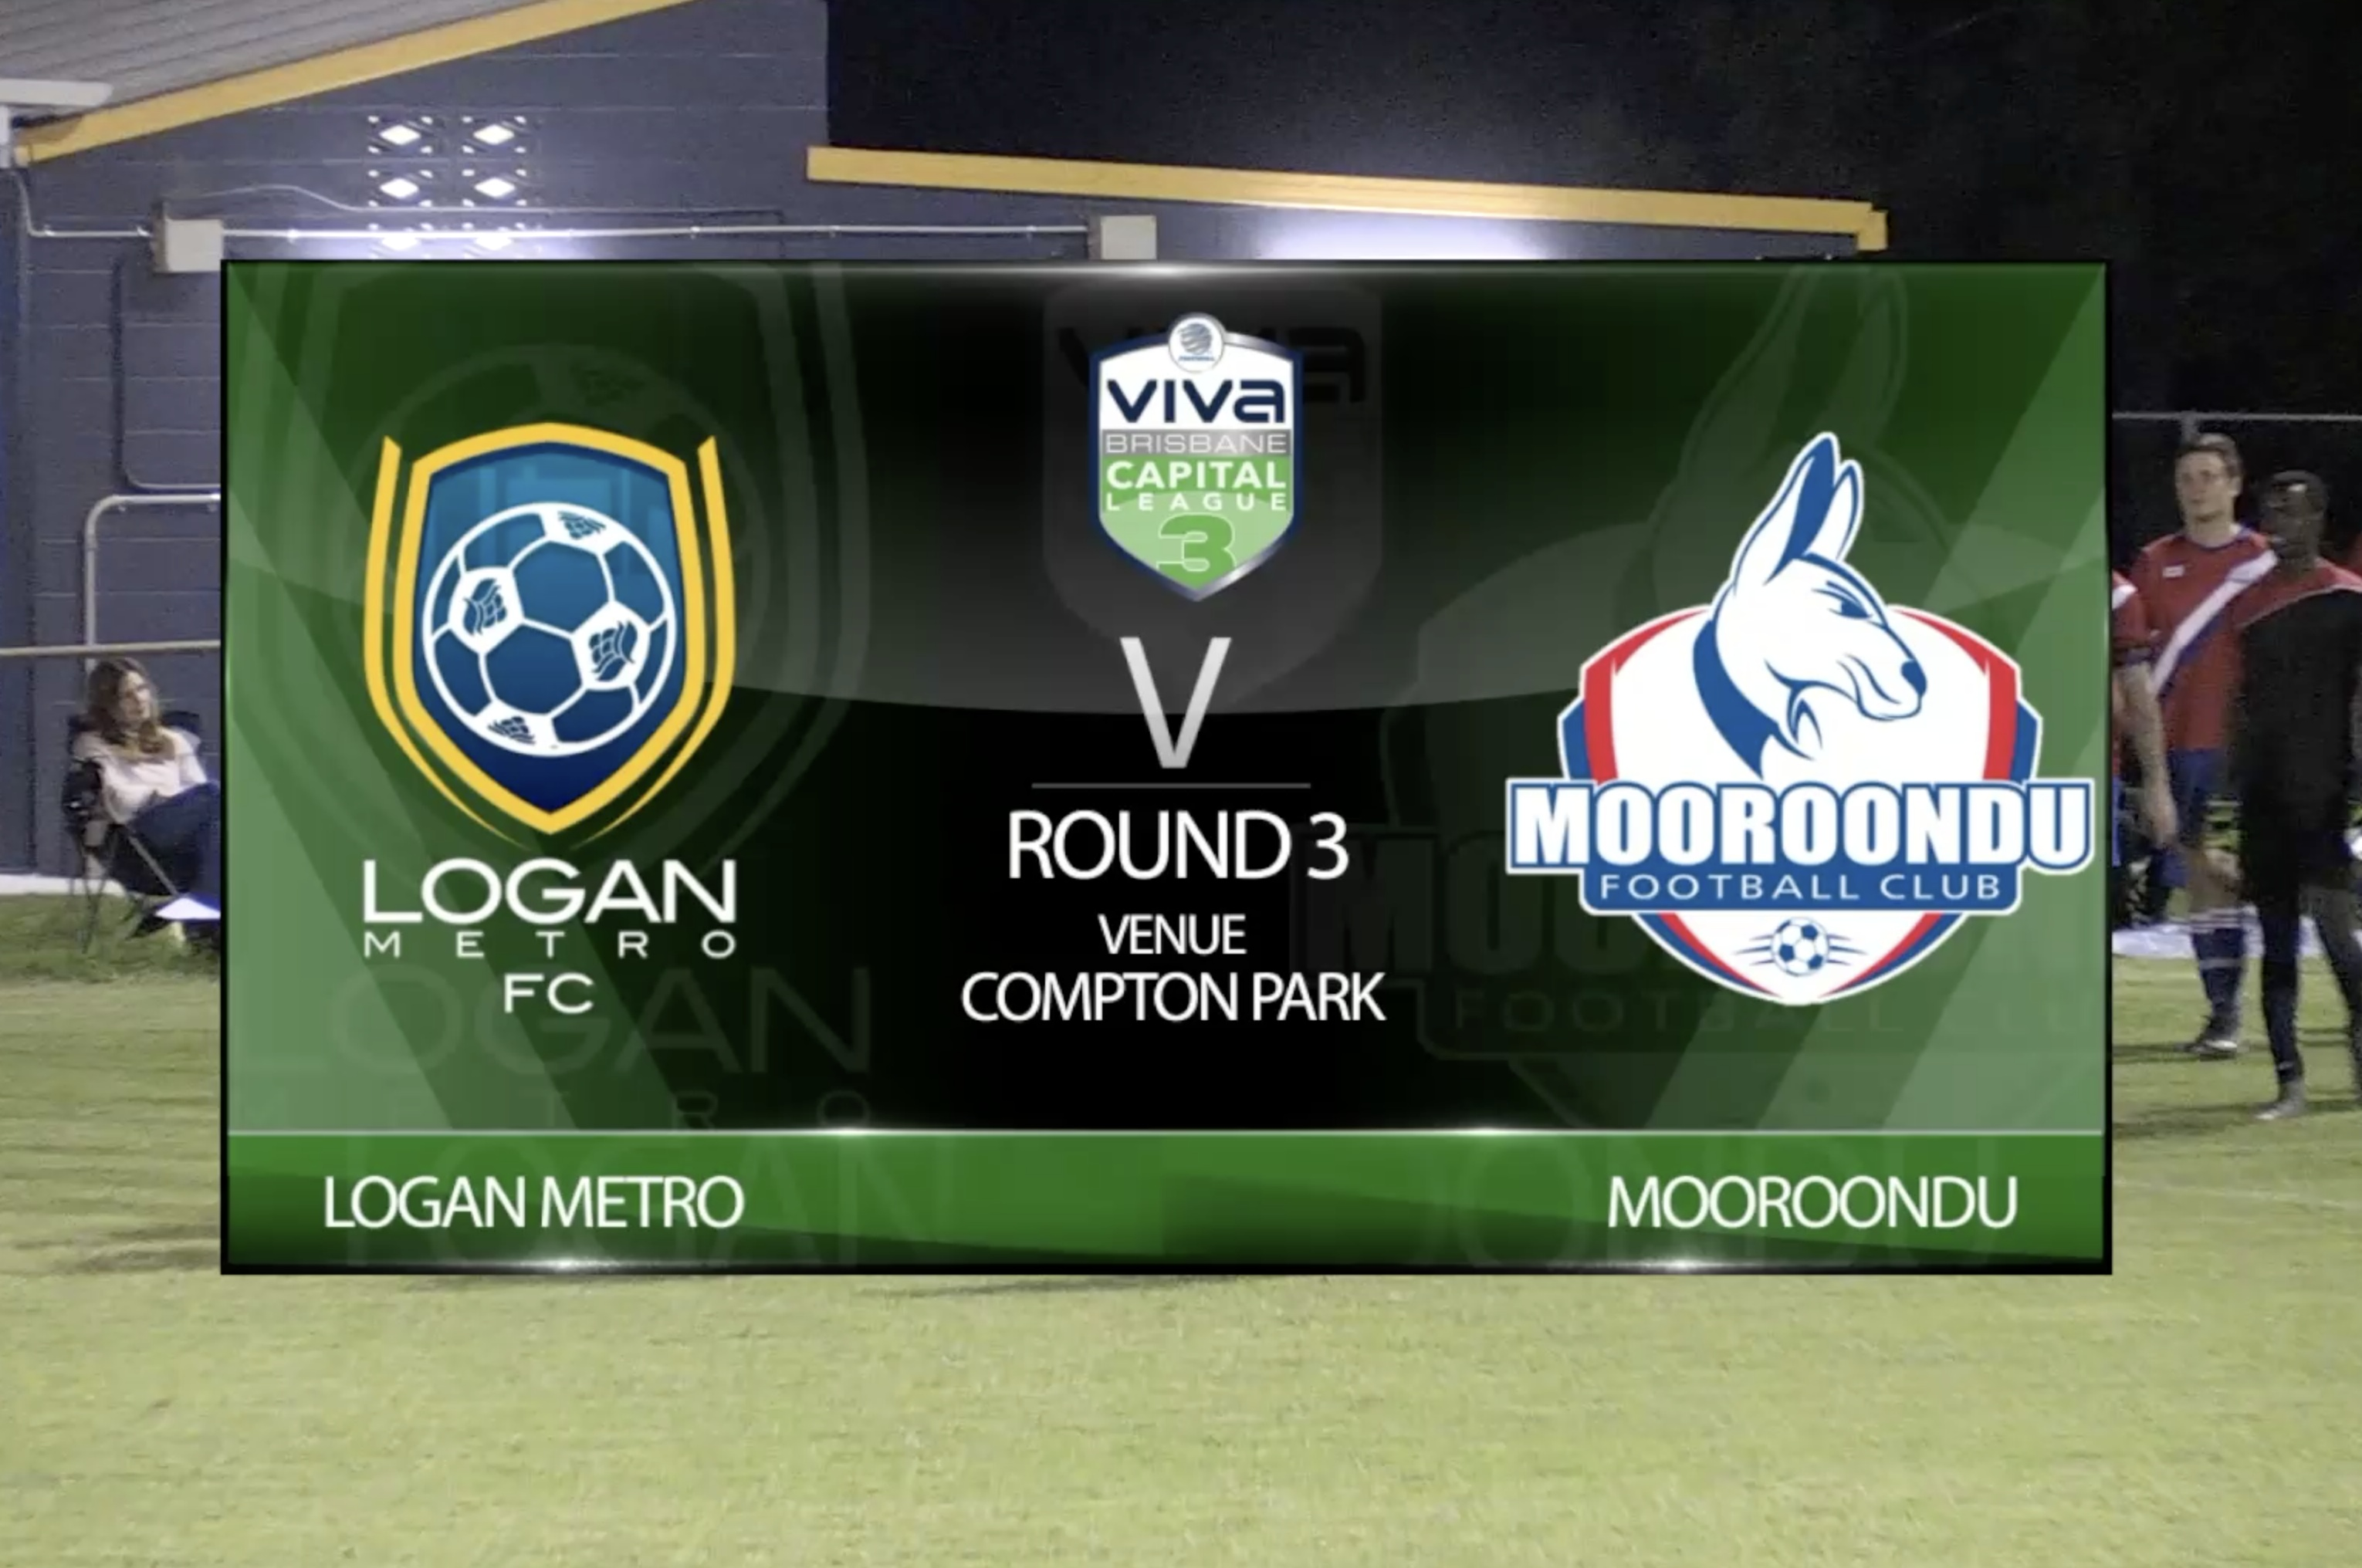 Viva Capital League 3 RD3 Logan Metro v Mooroondu